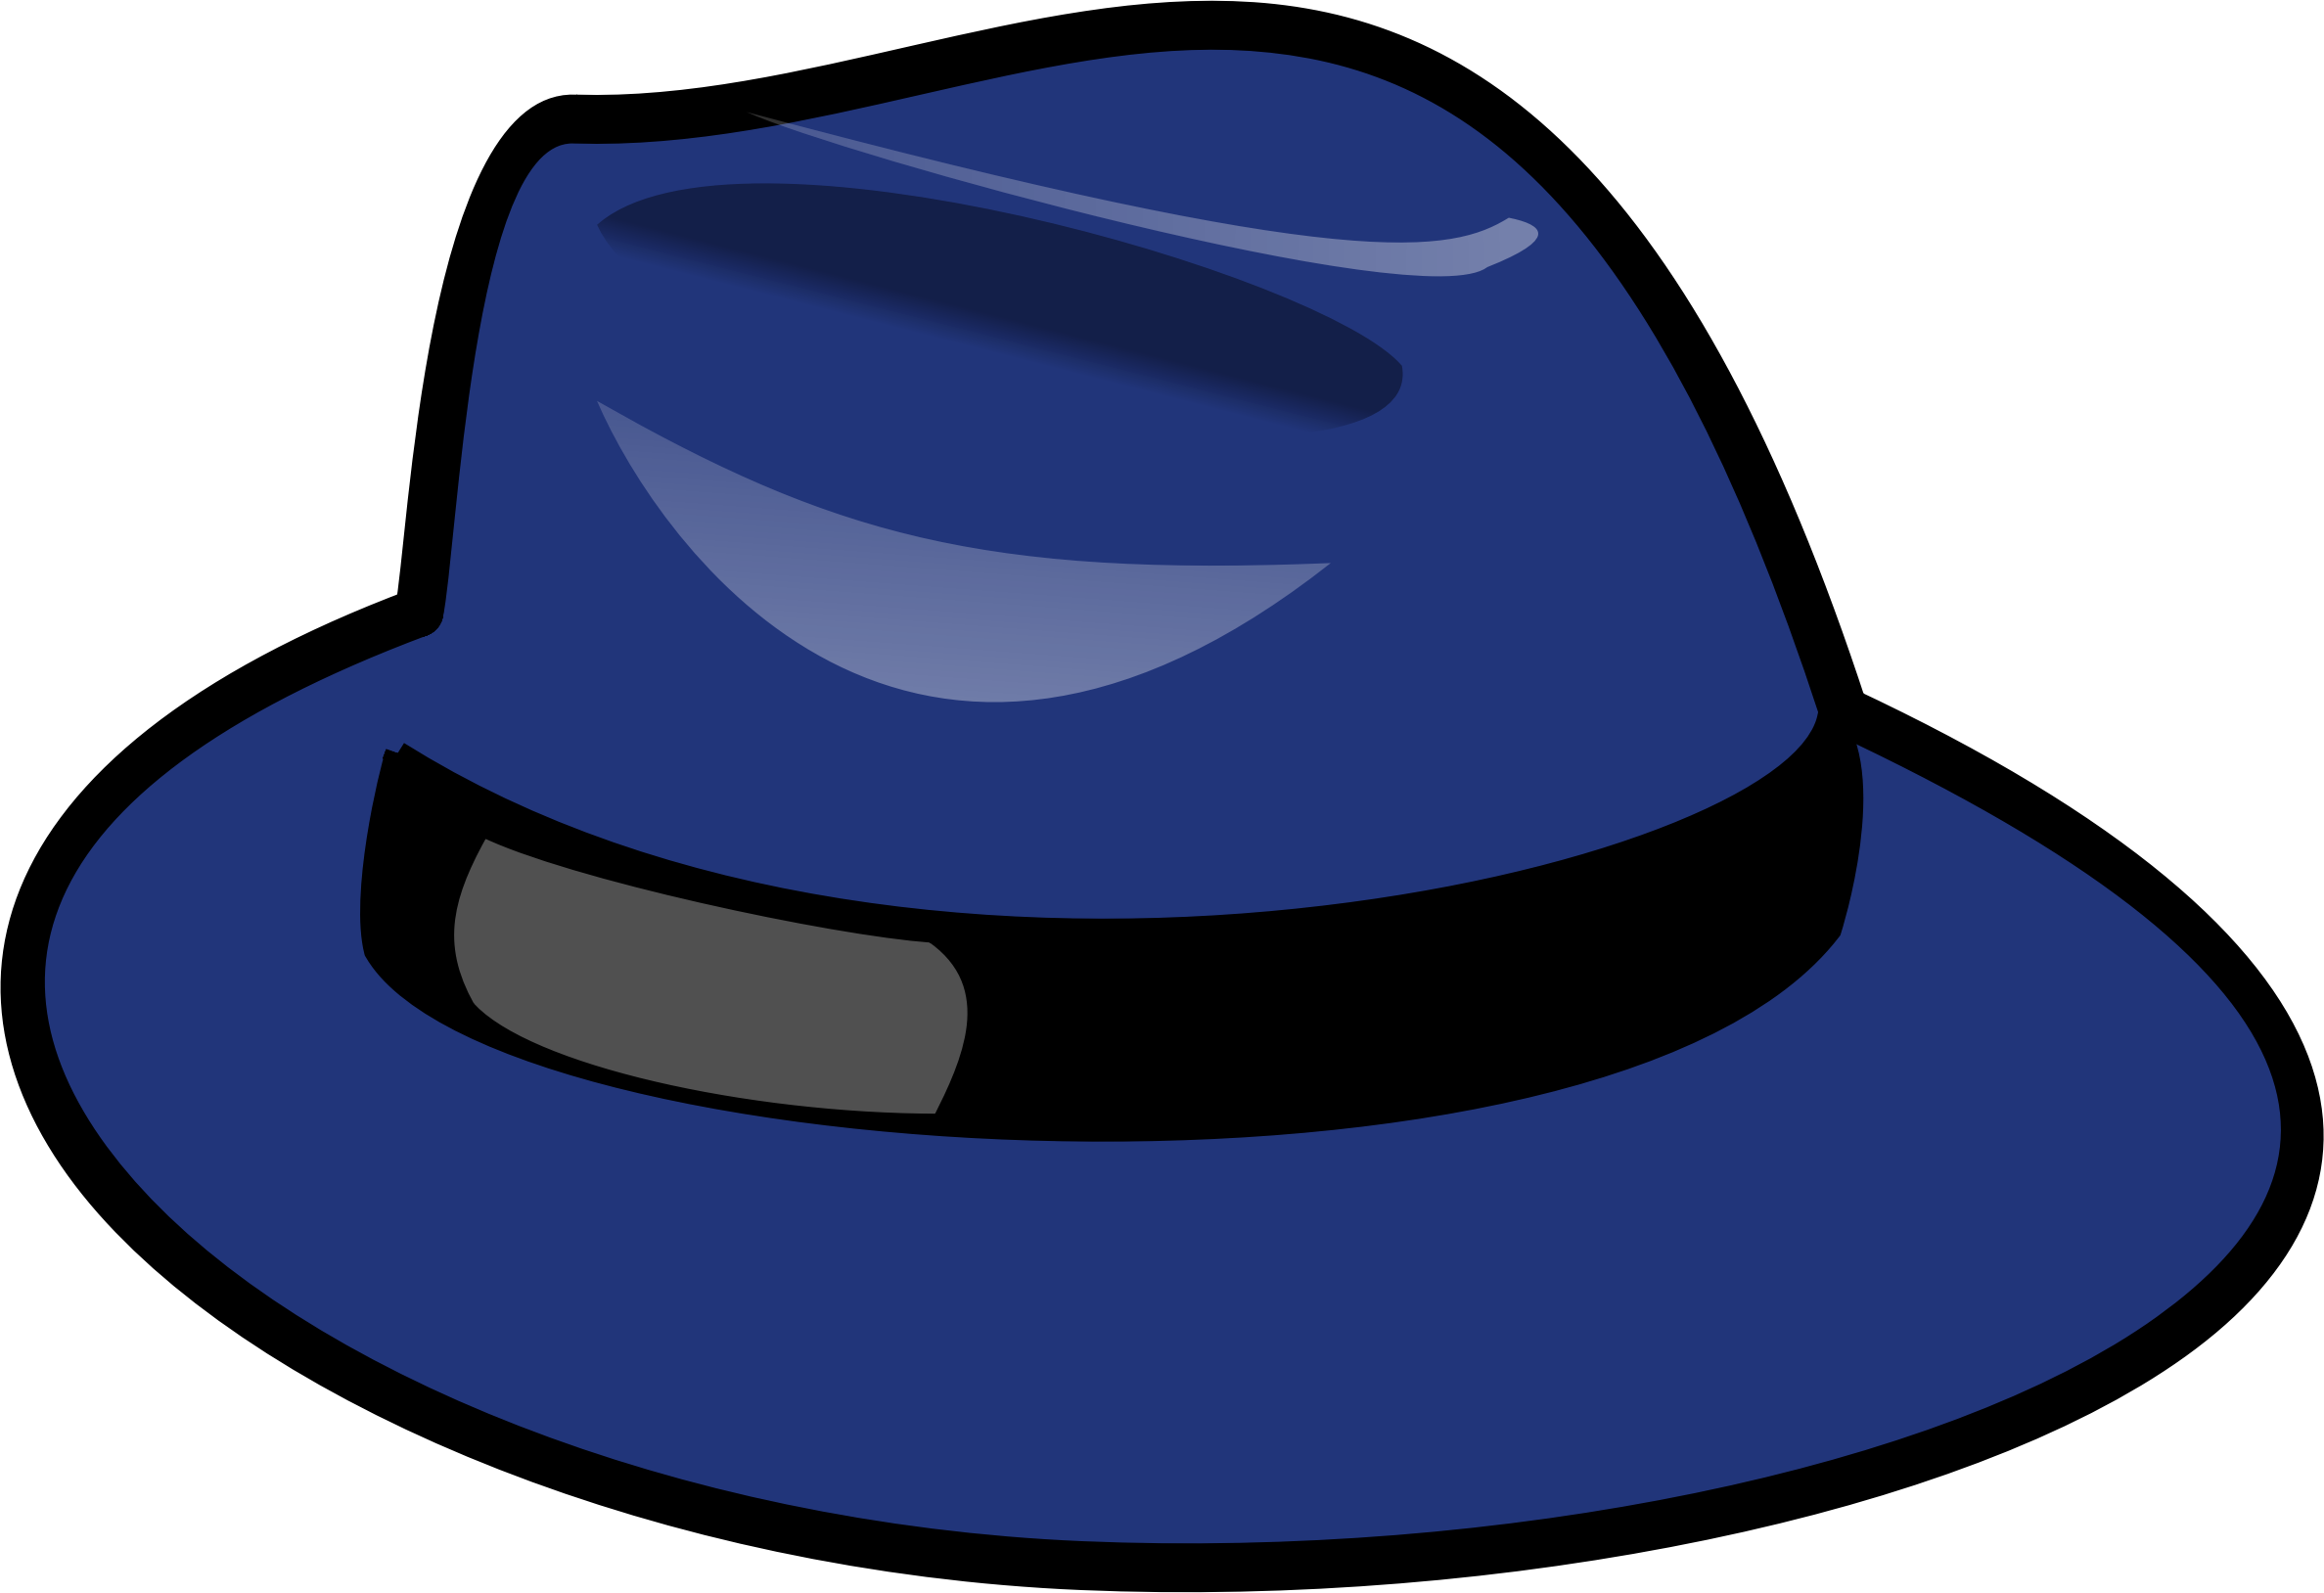 Fedora .png. Blue icons png free